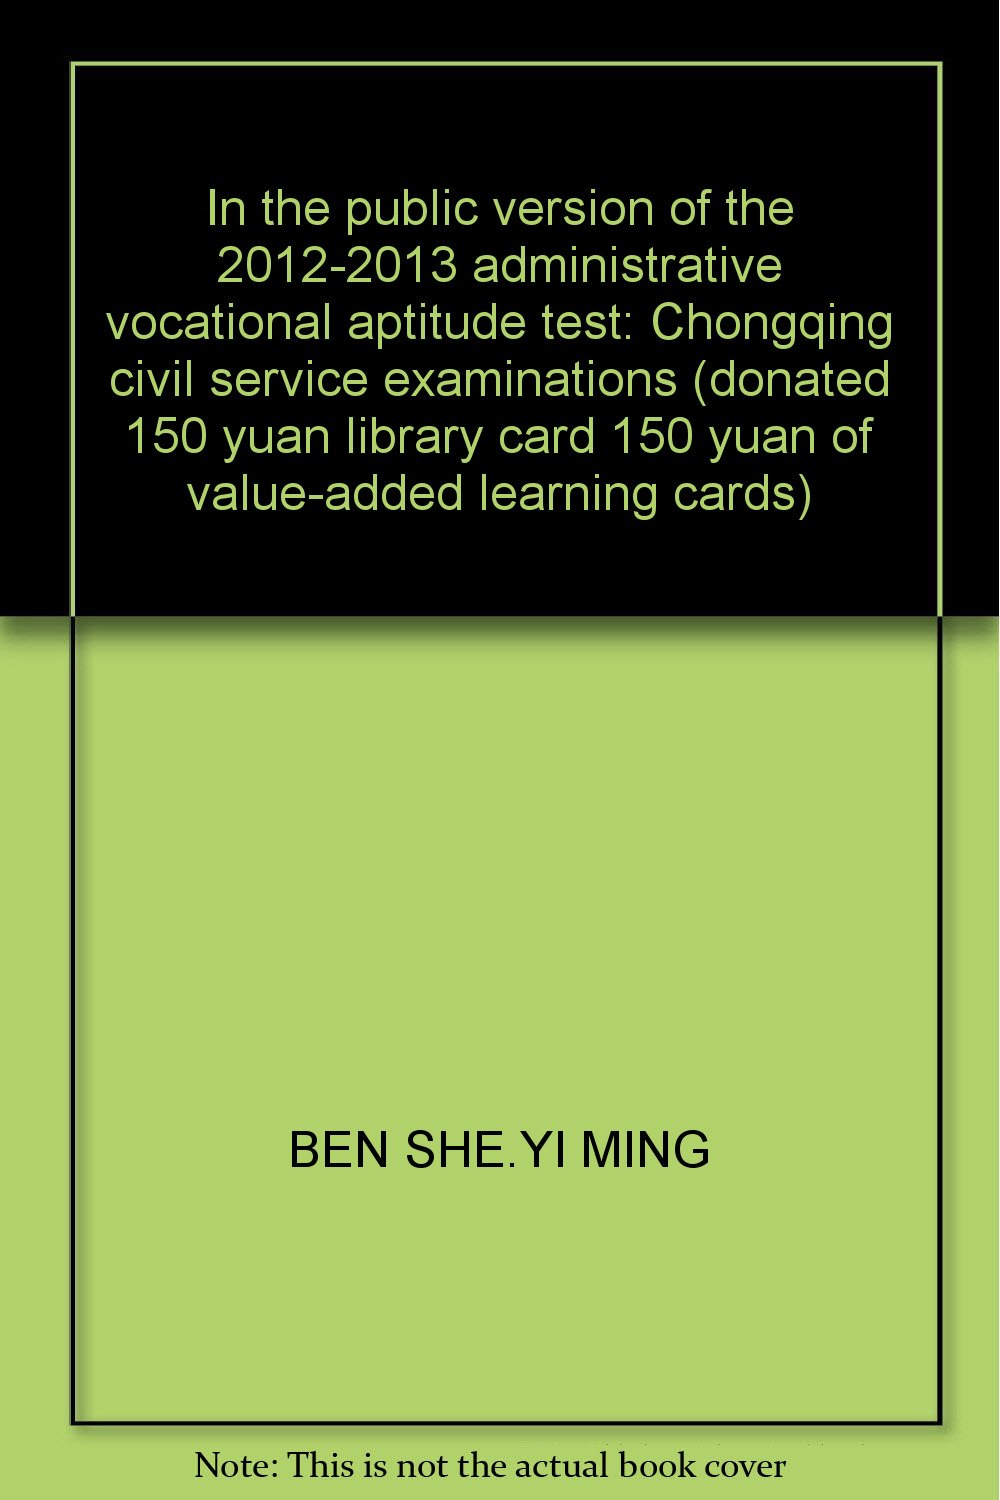 Read Online In the public version of the 2012-2013 administrative vocational aptitude test: Chongqing civil service examinations (donated 150 yuan library card 150 yuan of value-added learning cards) PDF